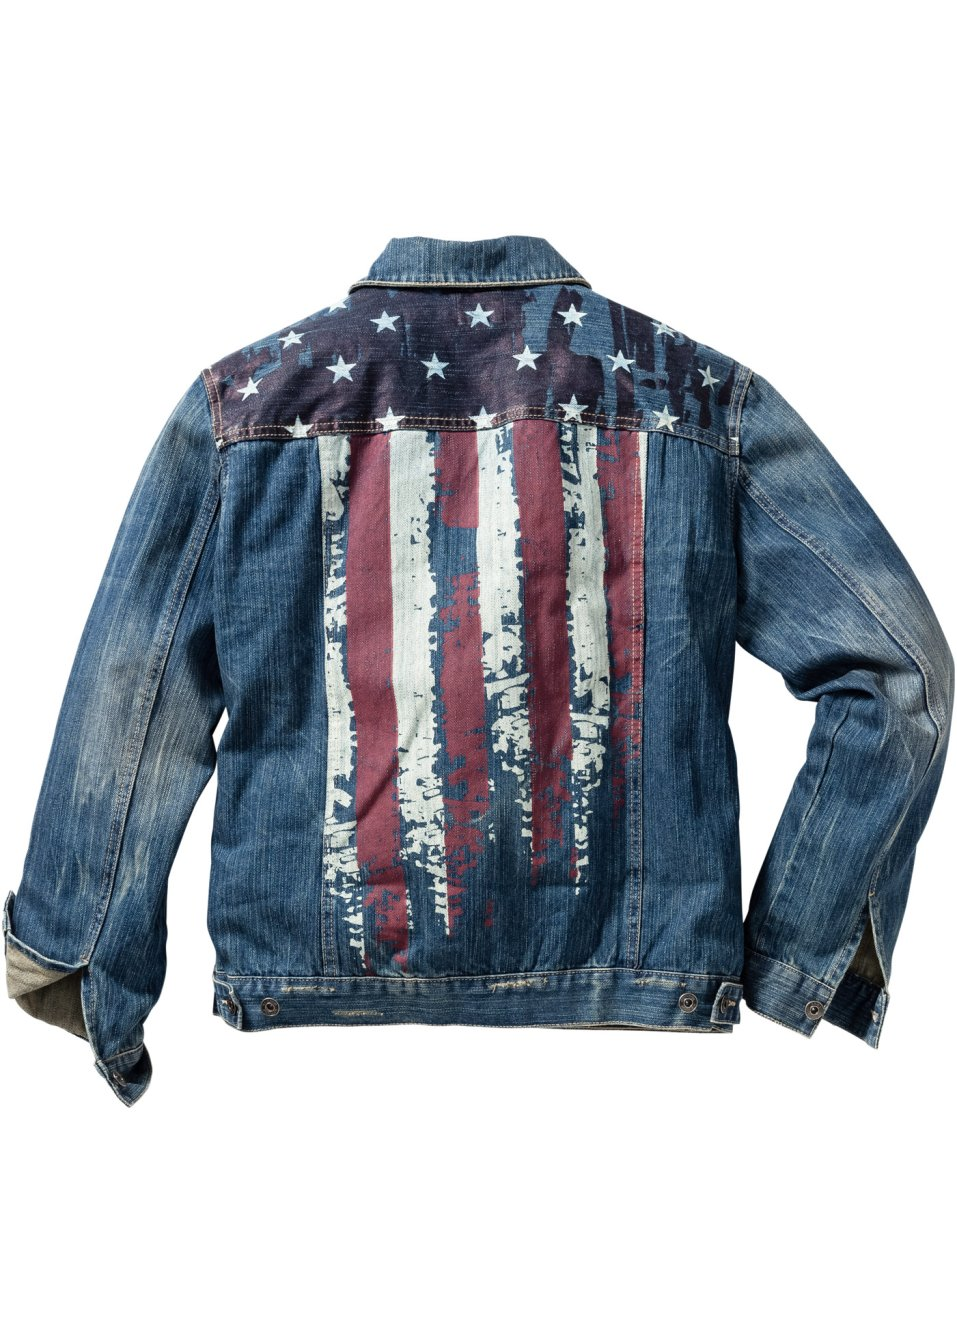 Jeansjack blue dirty used - Heren - RAINBOW